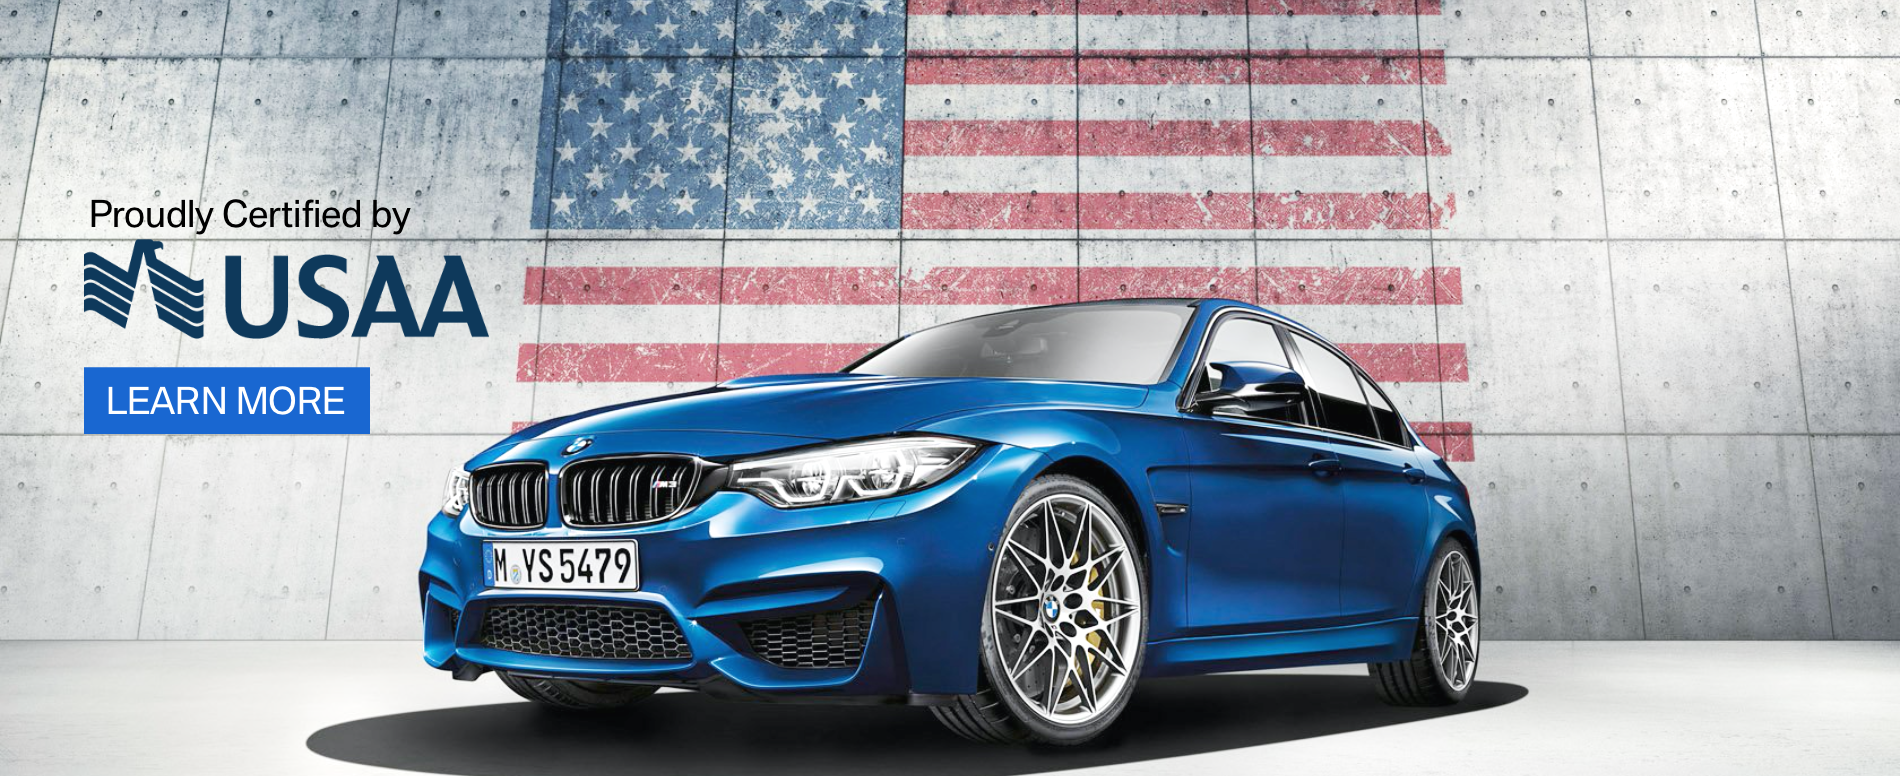 A BMW on display in front of an American Flag, showing the USAA logo in support of our military.